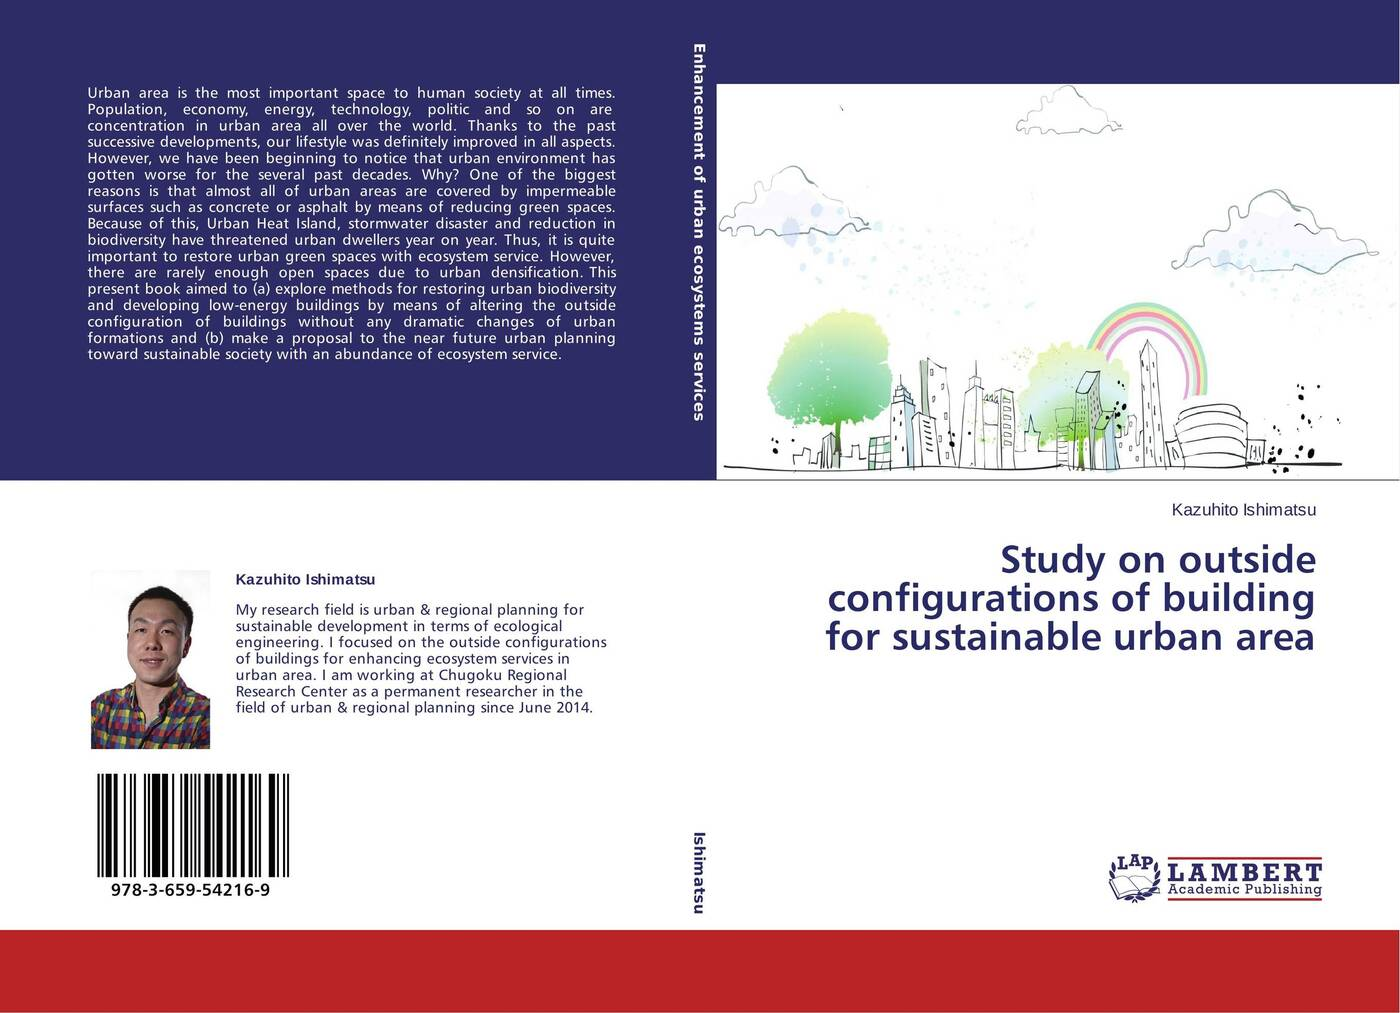 Kazuhito Ishimatsu Study on outside configurations of building for sustainable urban area robert costanza ecosystem services in agricultural and urban landscapes